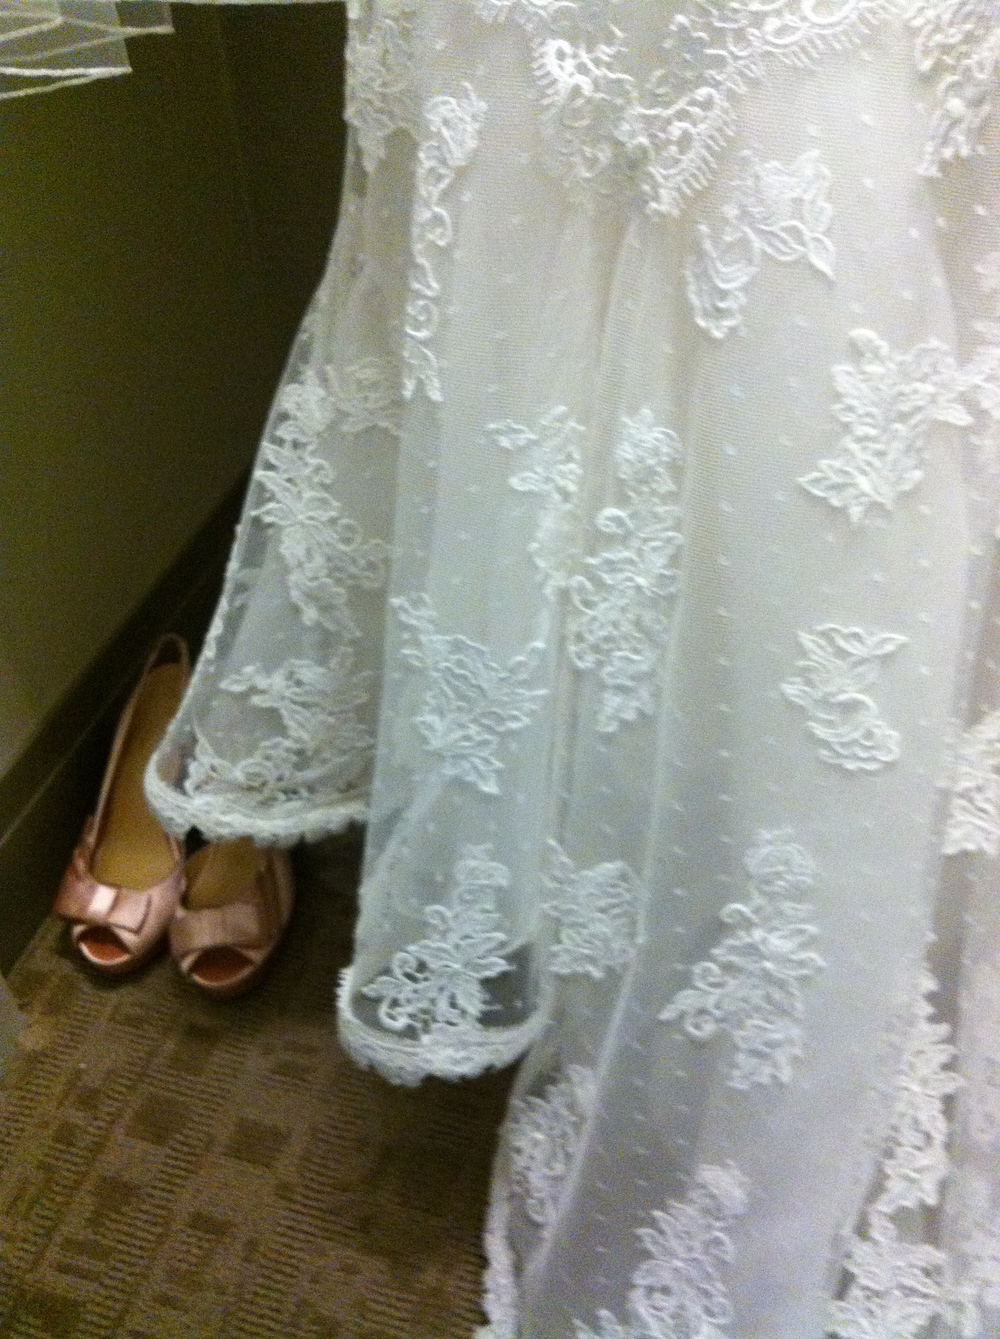 Pretty Blush Wedding Shoes.  Photo by Andrea Eppolito.